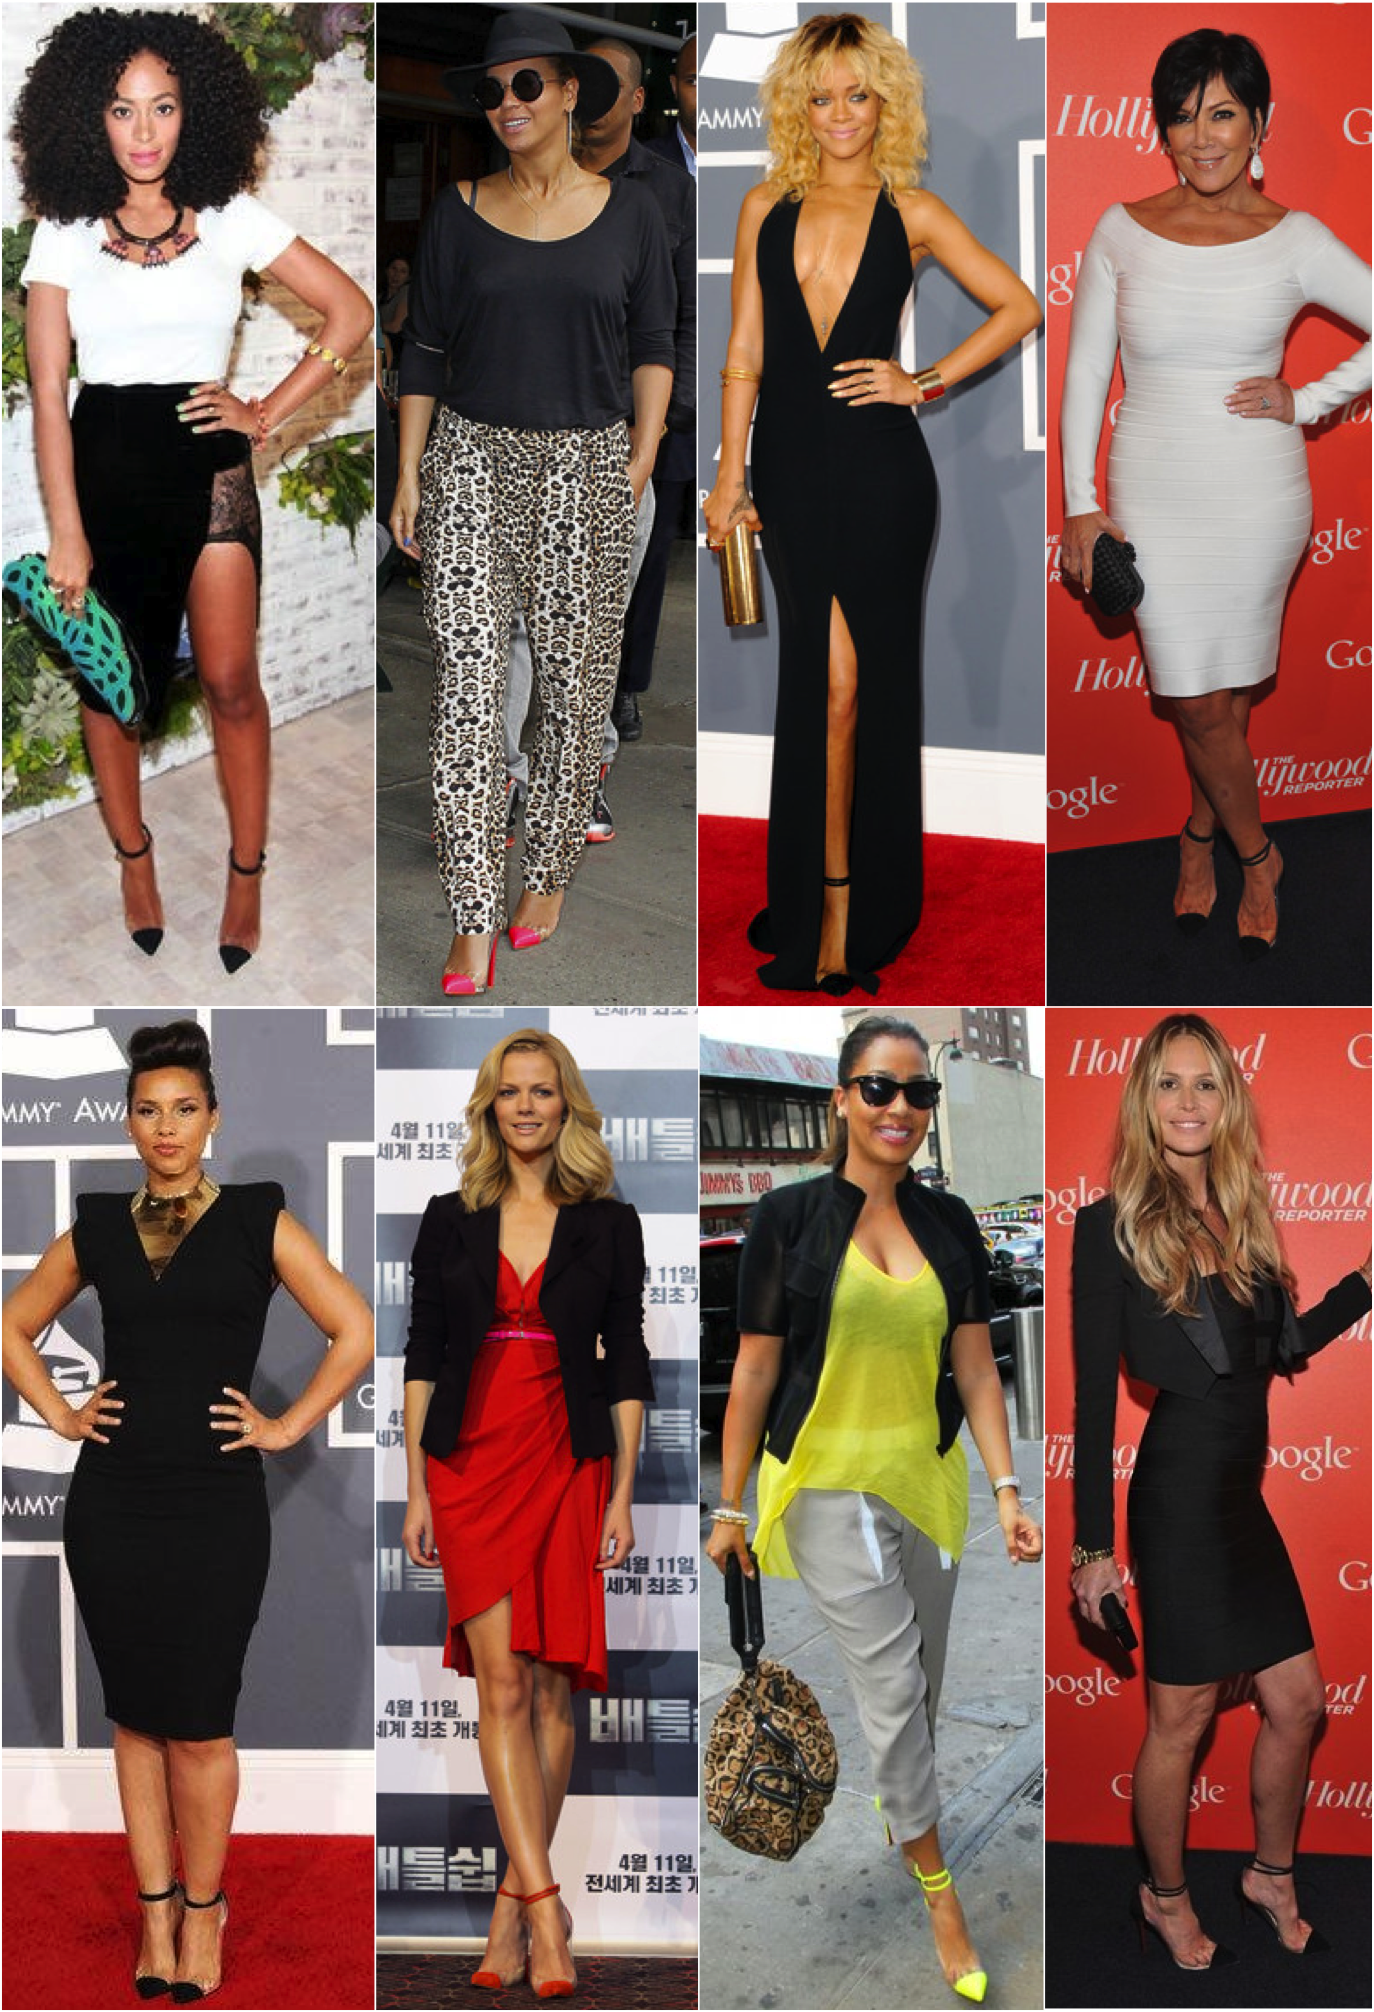 http://www.fashionismo.com.br/wp-content/uploads/2012/05/celebs-un-bout.png